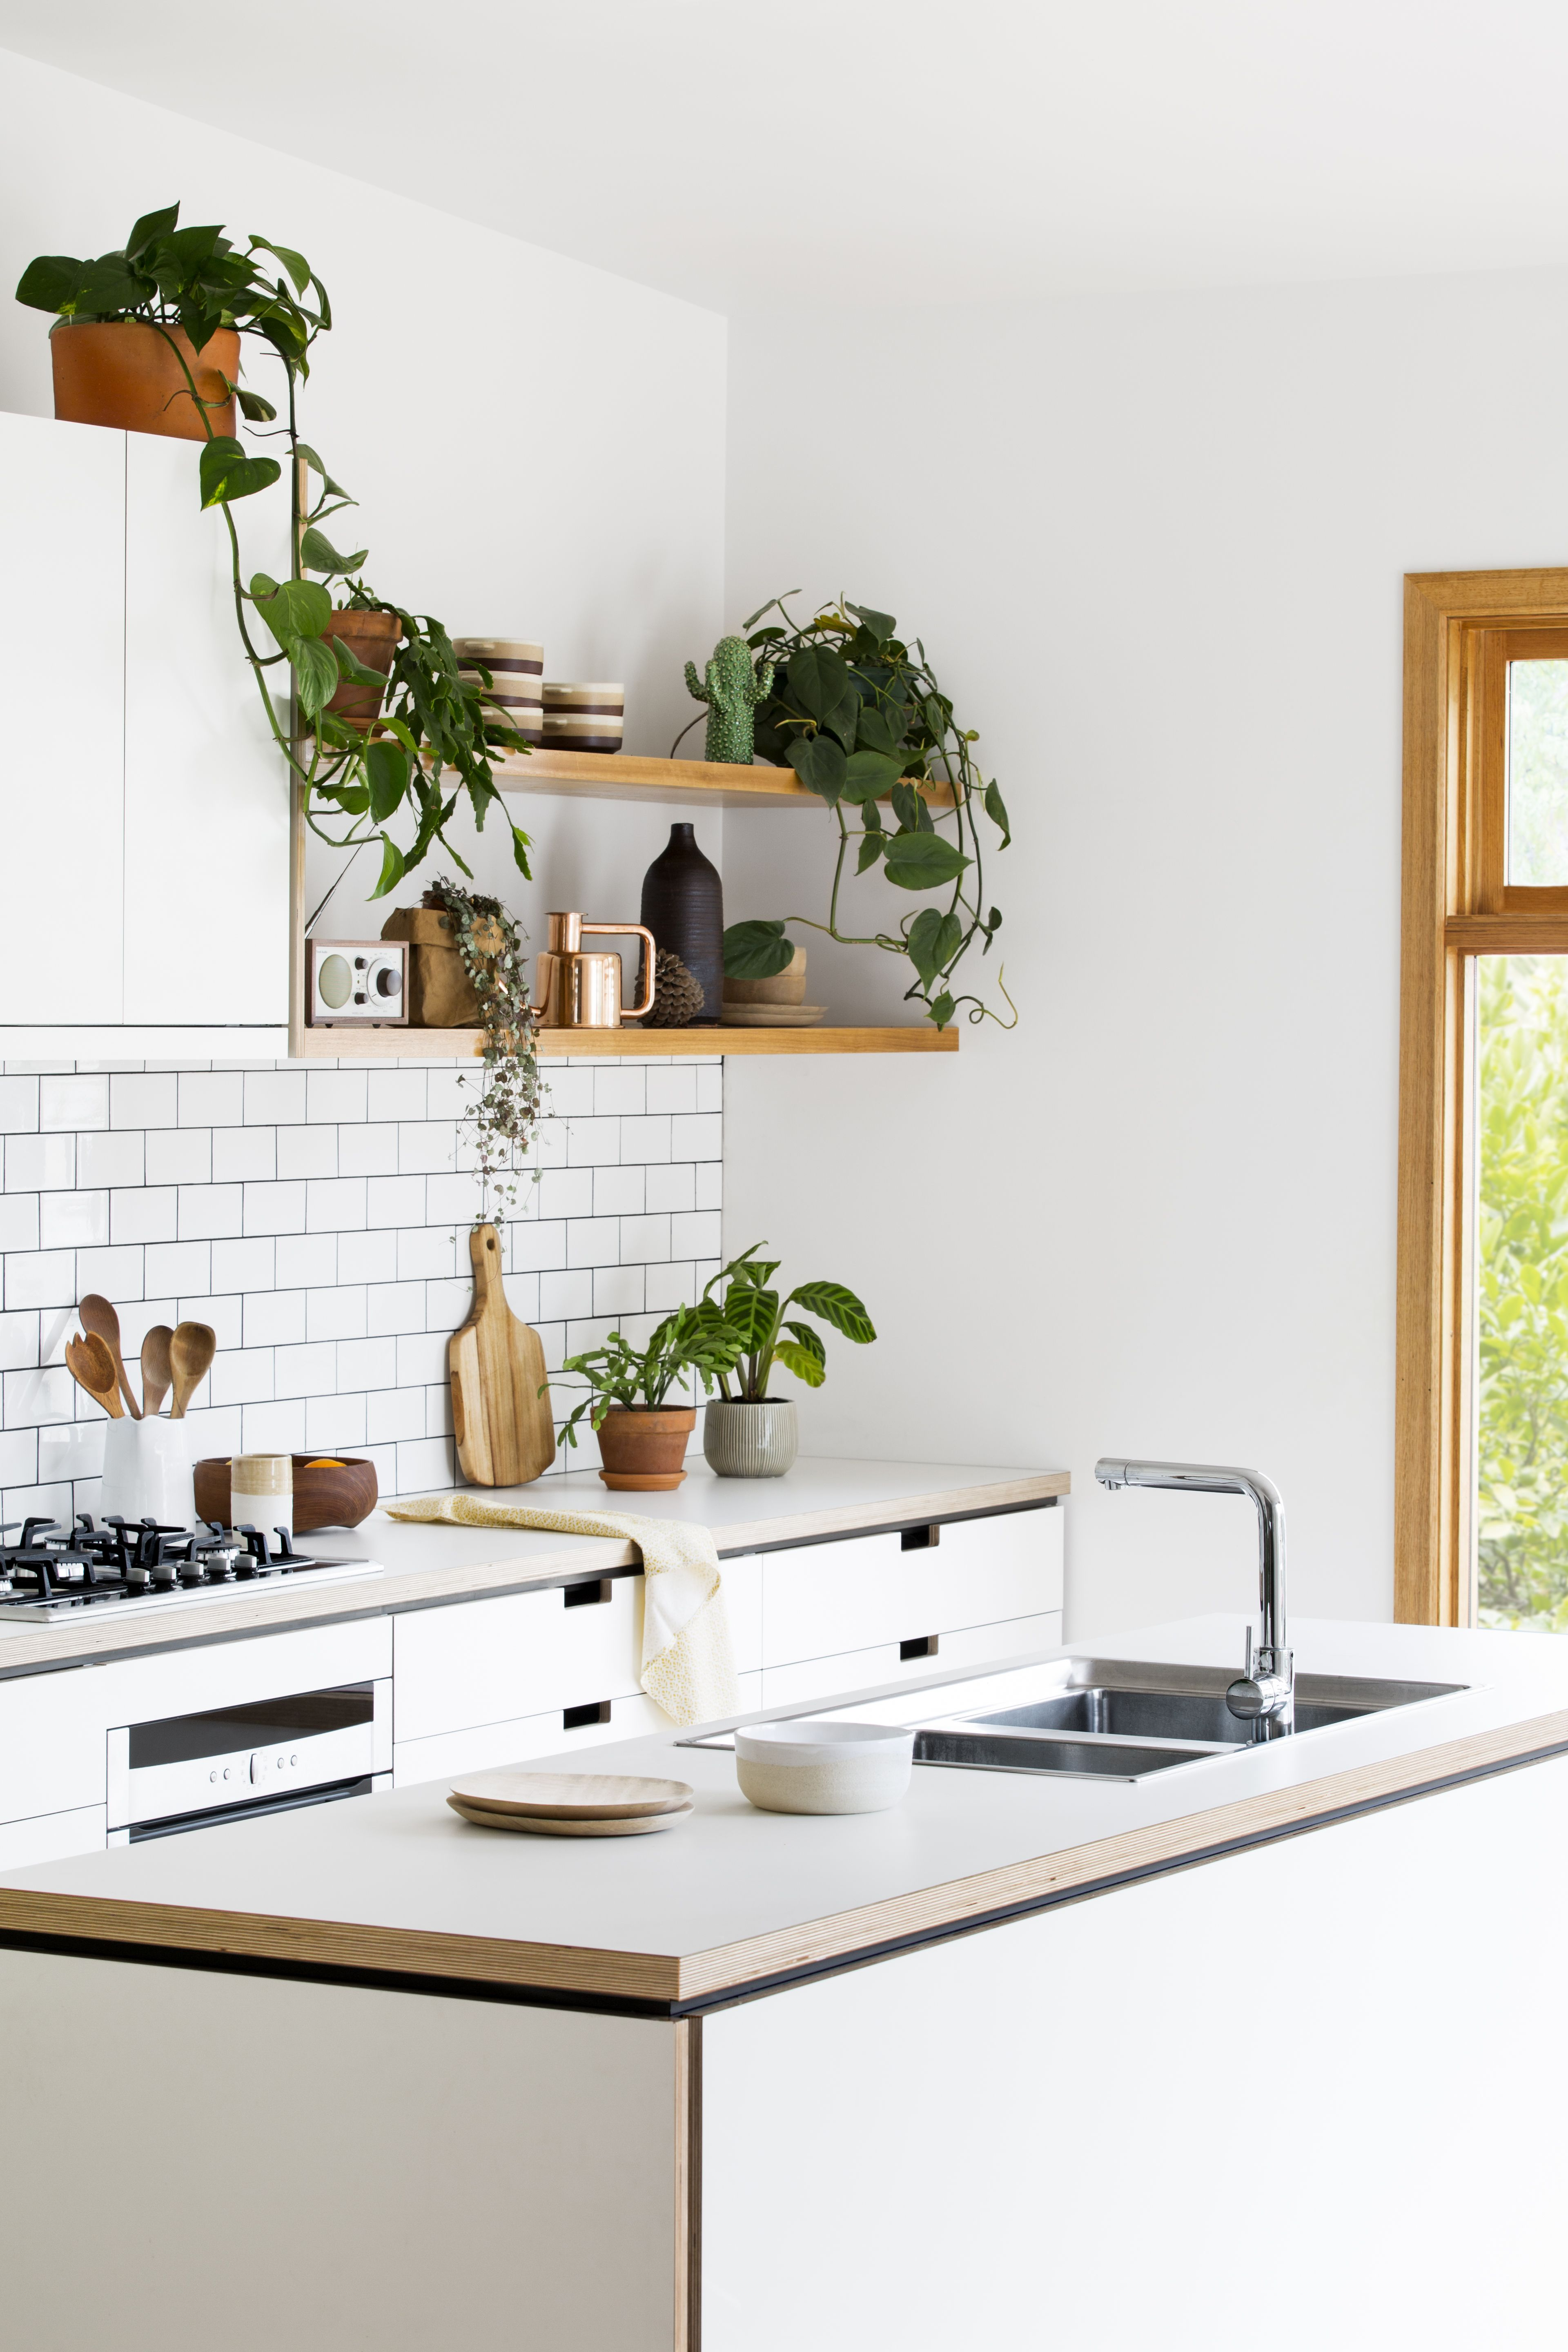 cantilever kitchen 3 photography by martina gemmola styling by